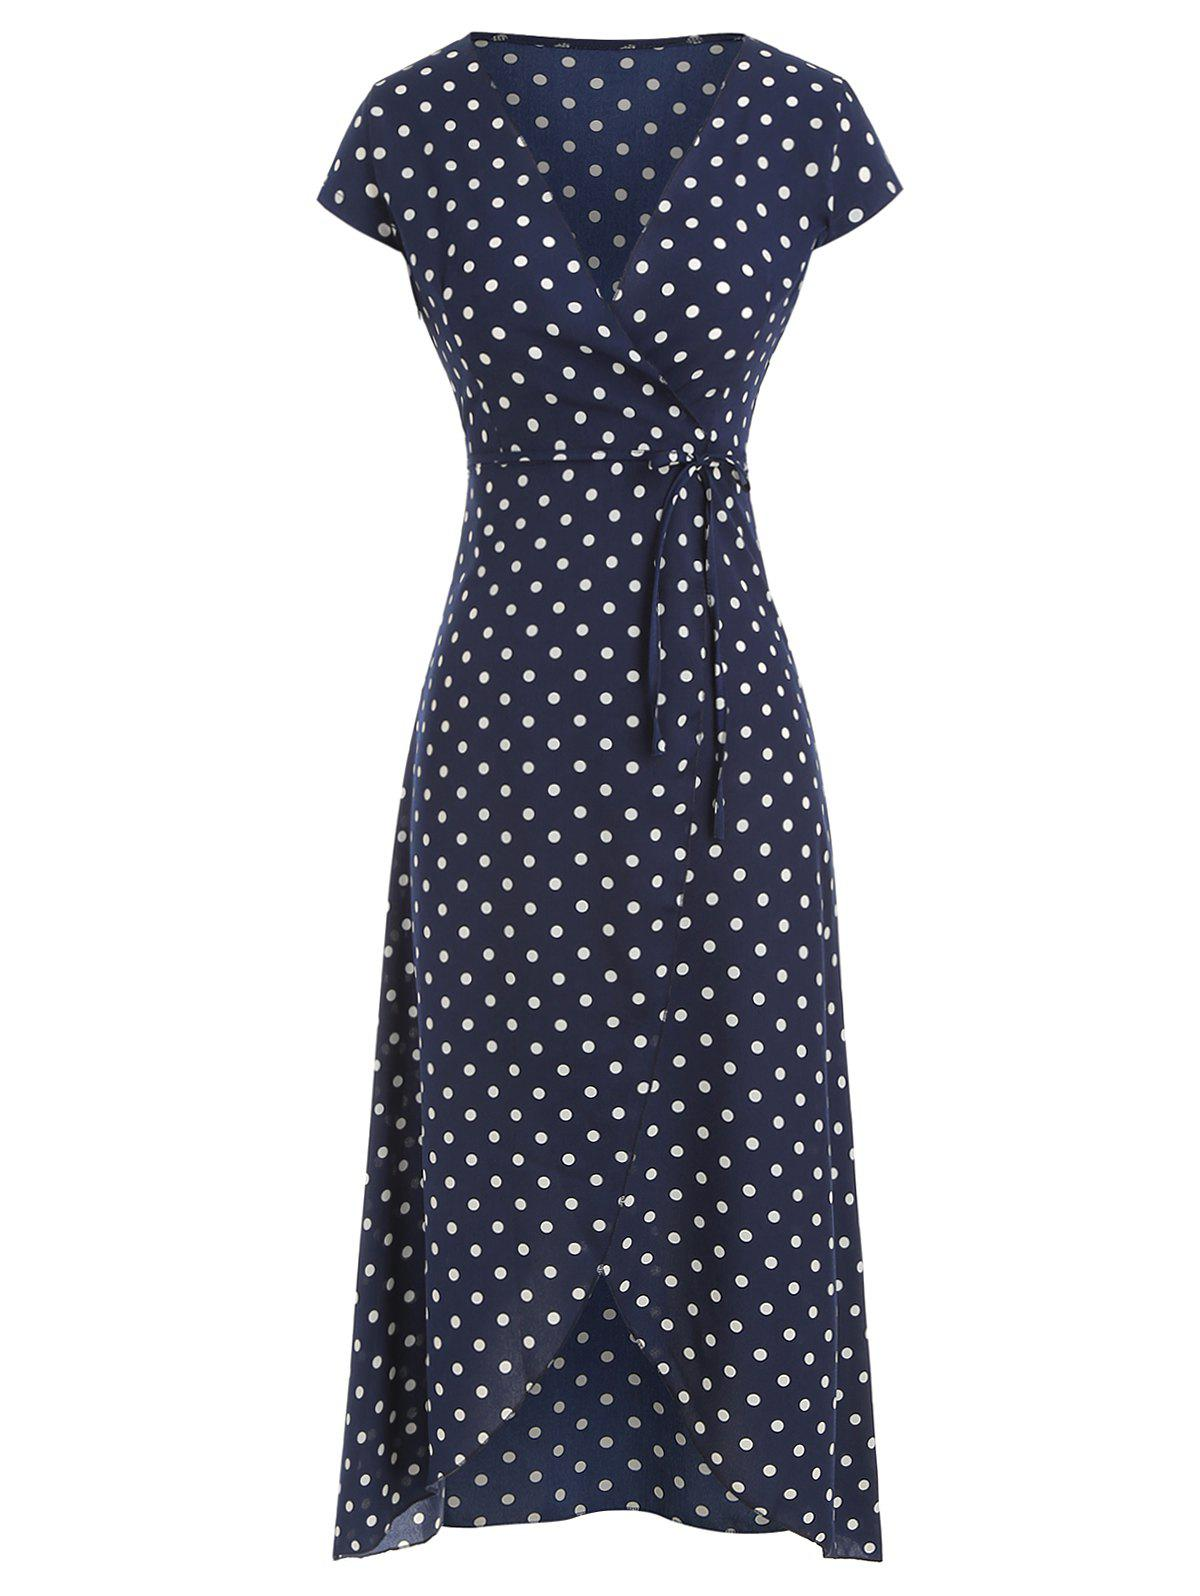 Affordable Polka Dot Belted Overlap Dress